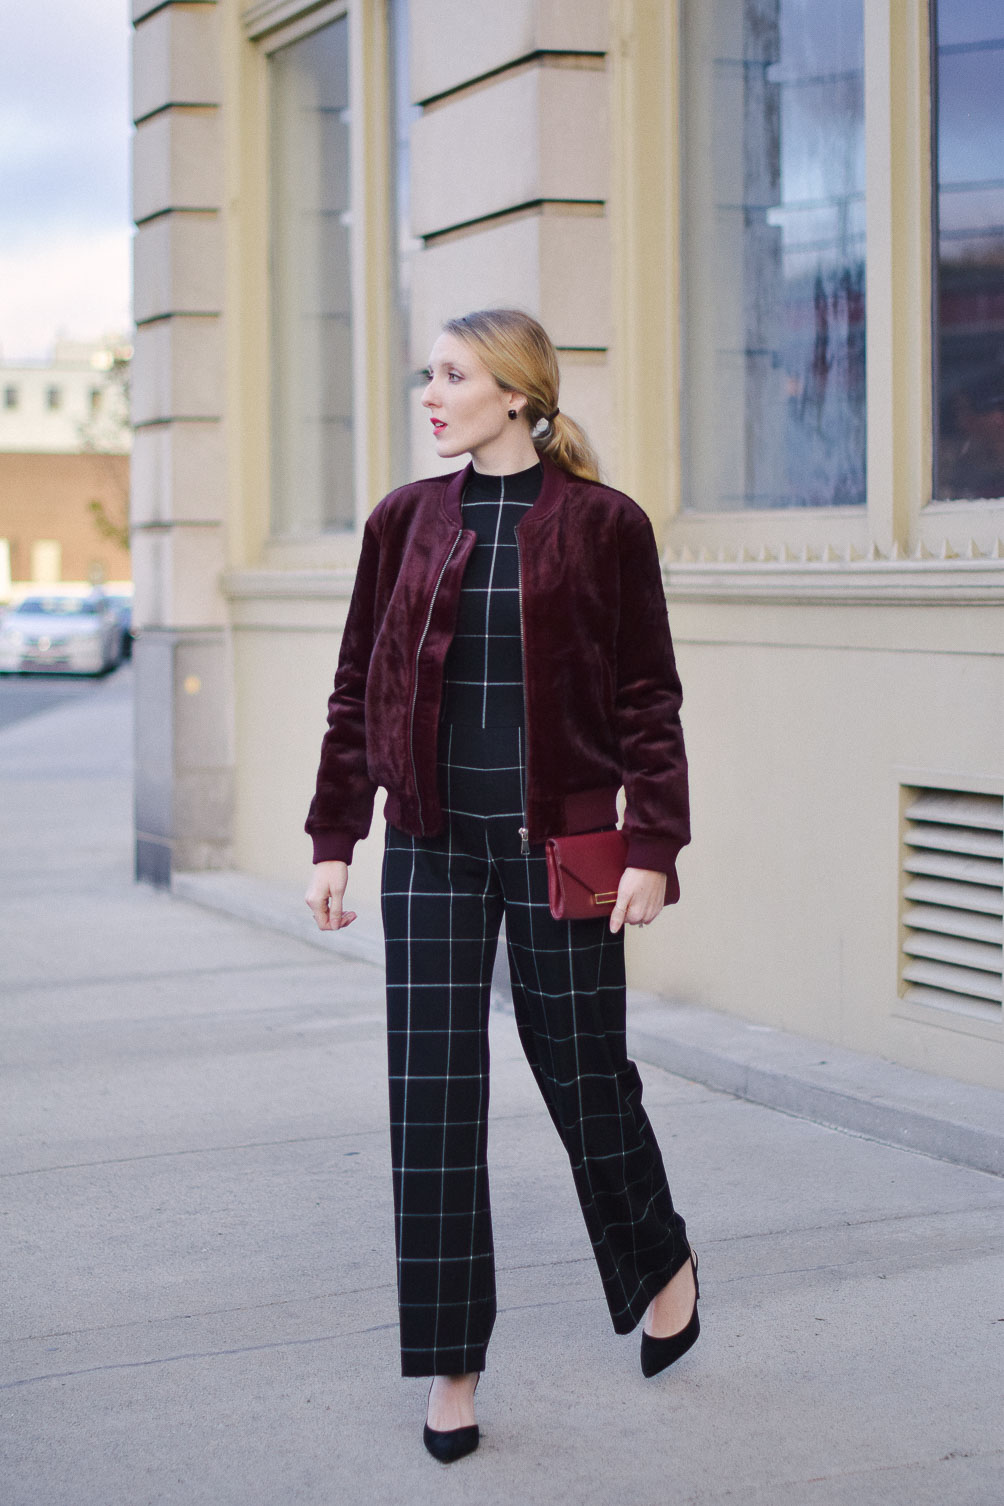 styling a check jumpsuit with faux fur bomber jacket for alternative holiday party outfit ideas